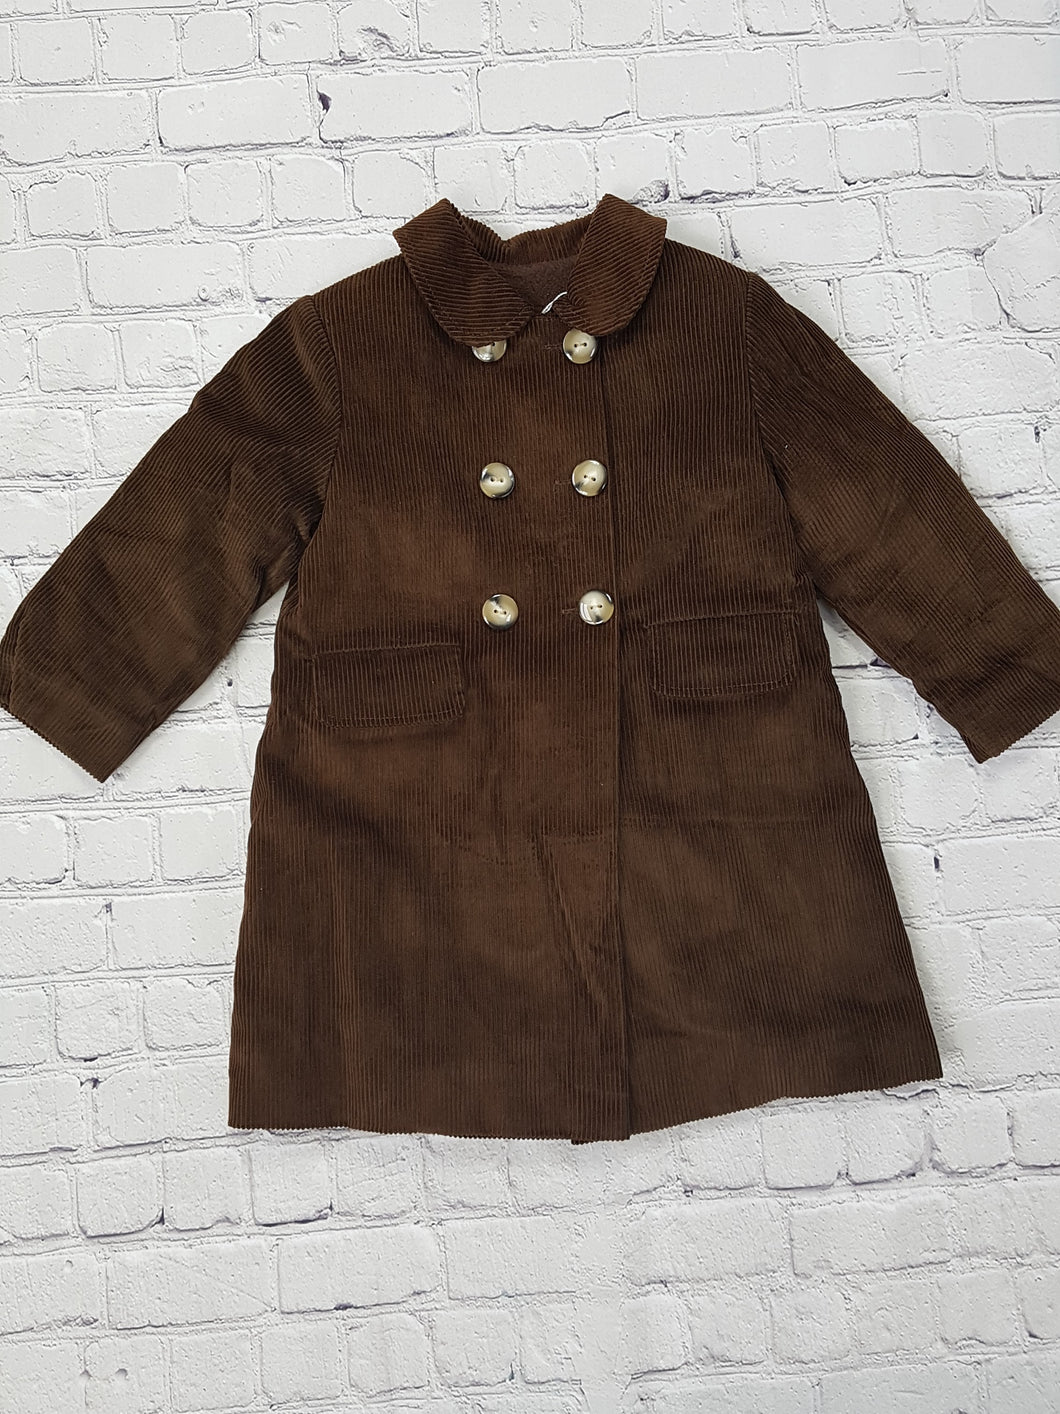 AMAIA outlet brown velvet coat - FAMILY AFFAIRE